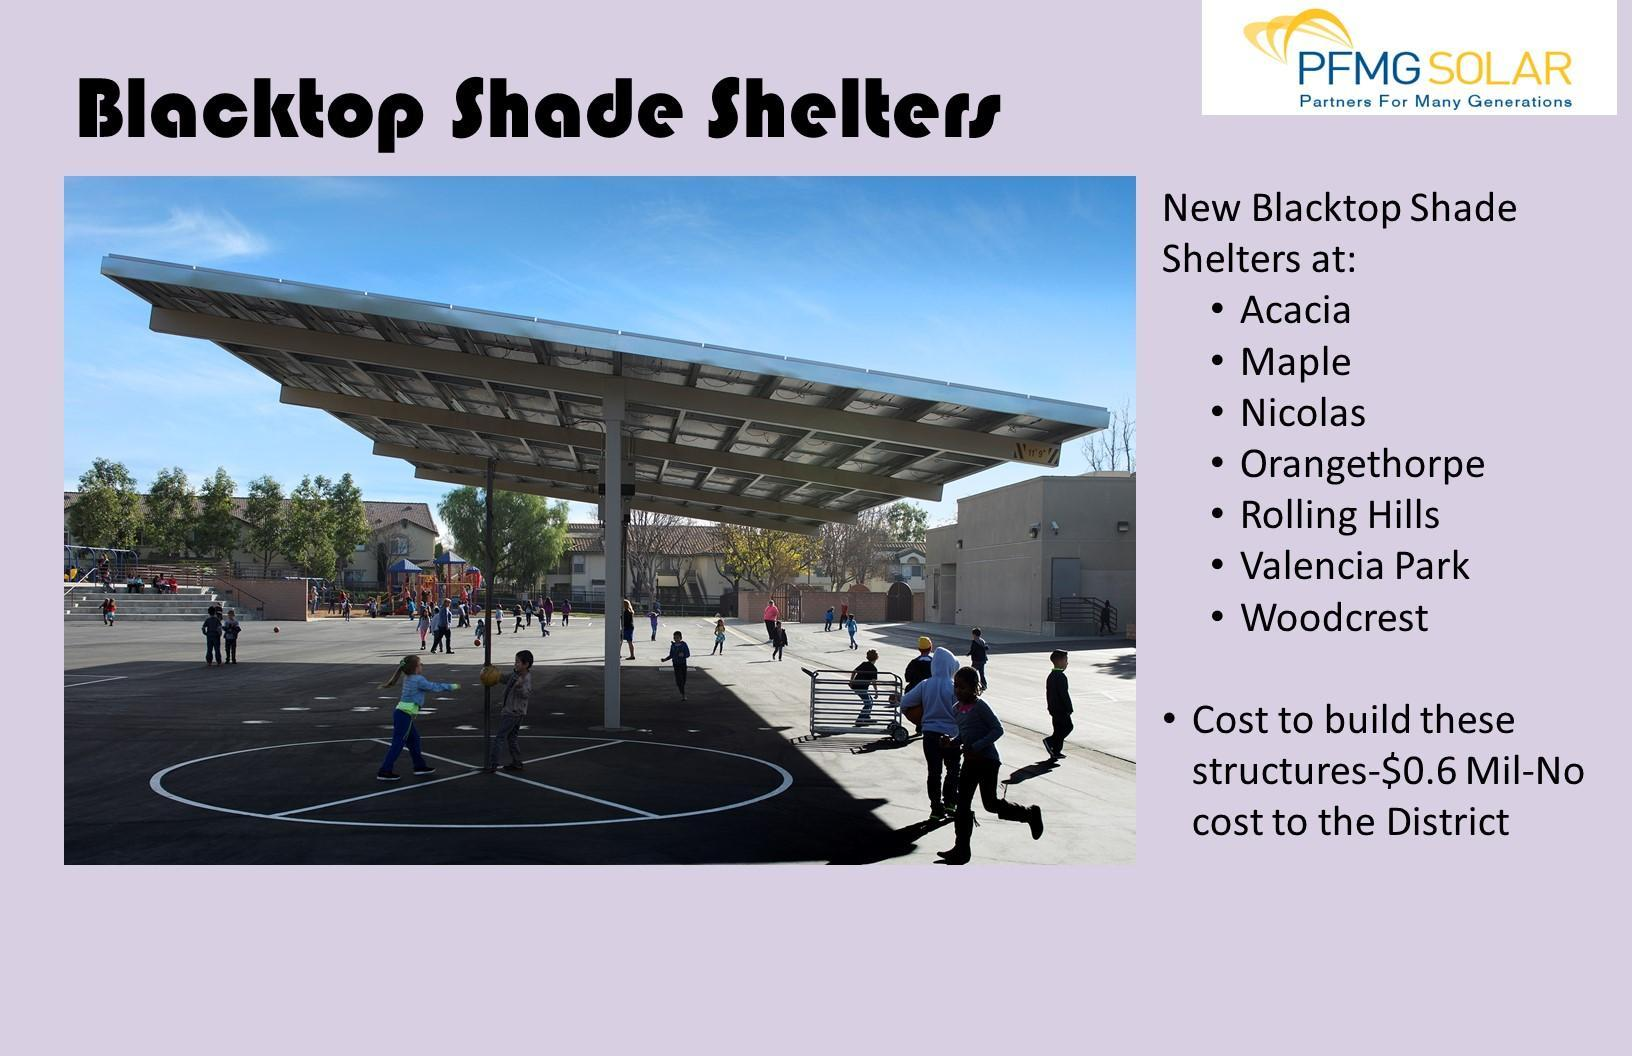 Blacktop Shade Shelters